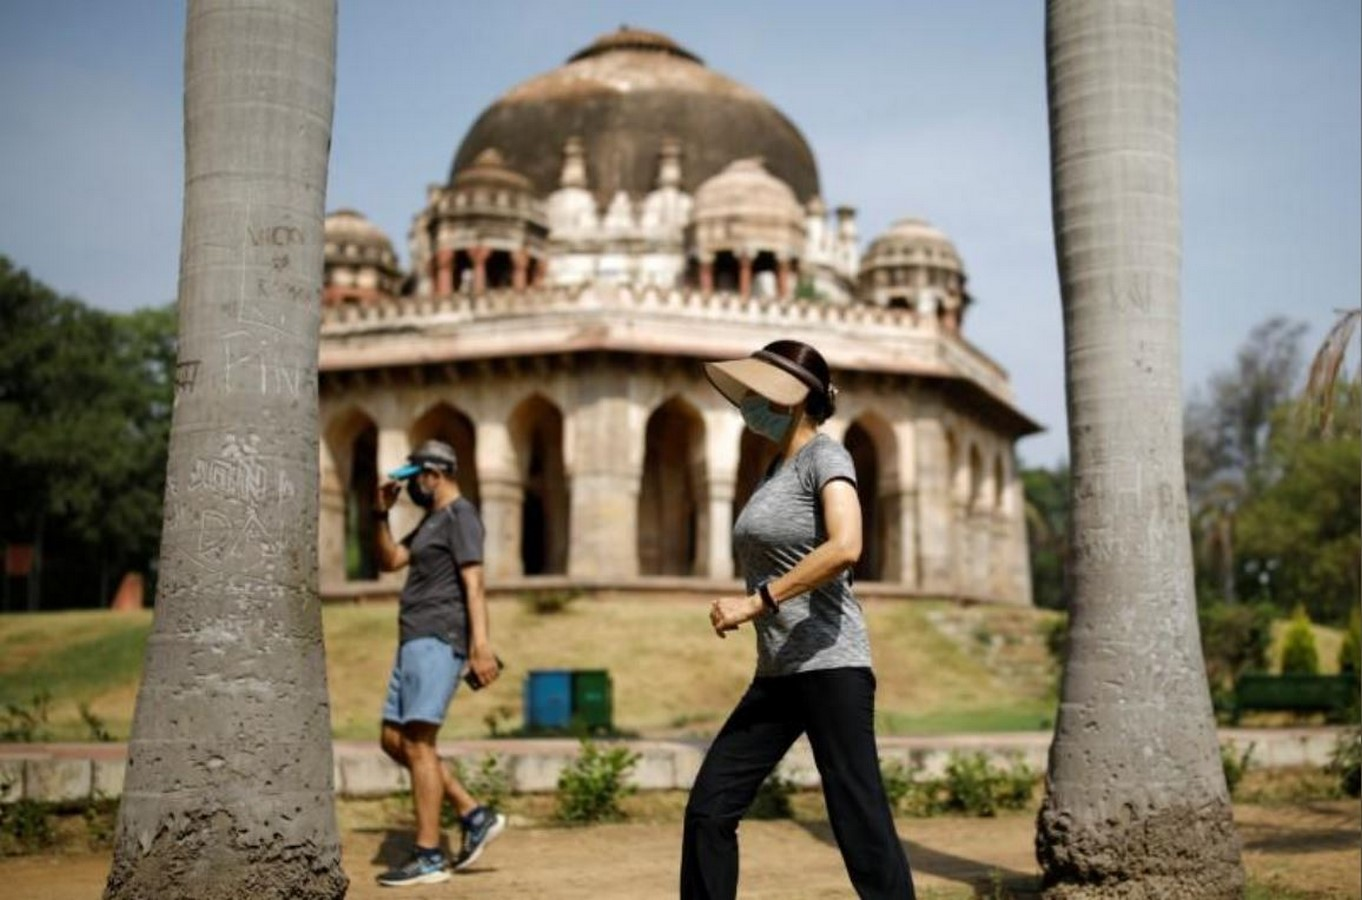 Will social distancing lead to safe public spaces after pandemic in India - Sheet4